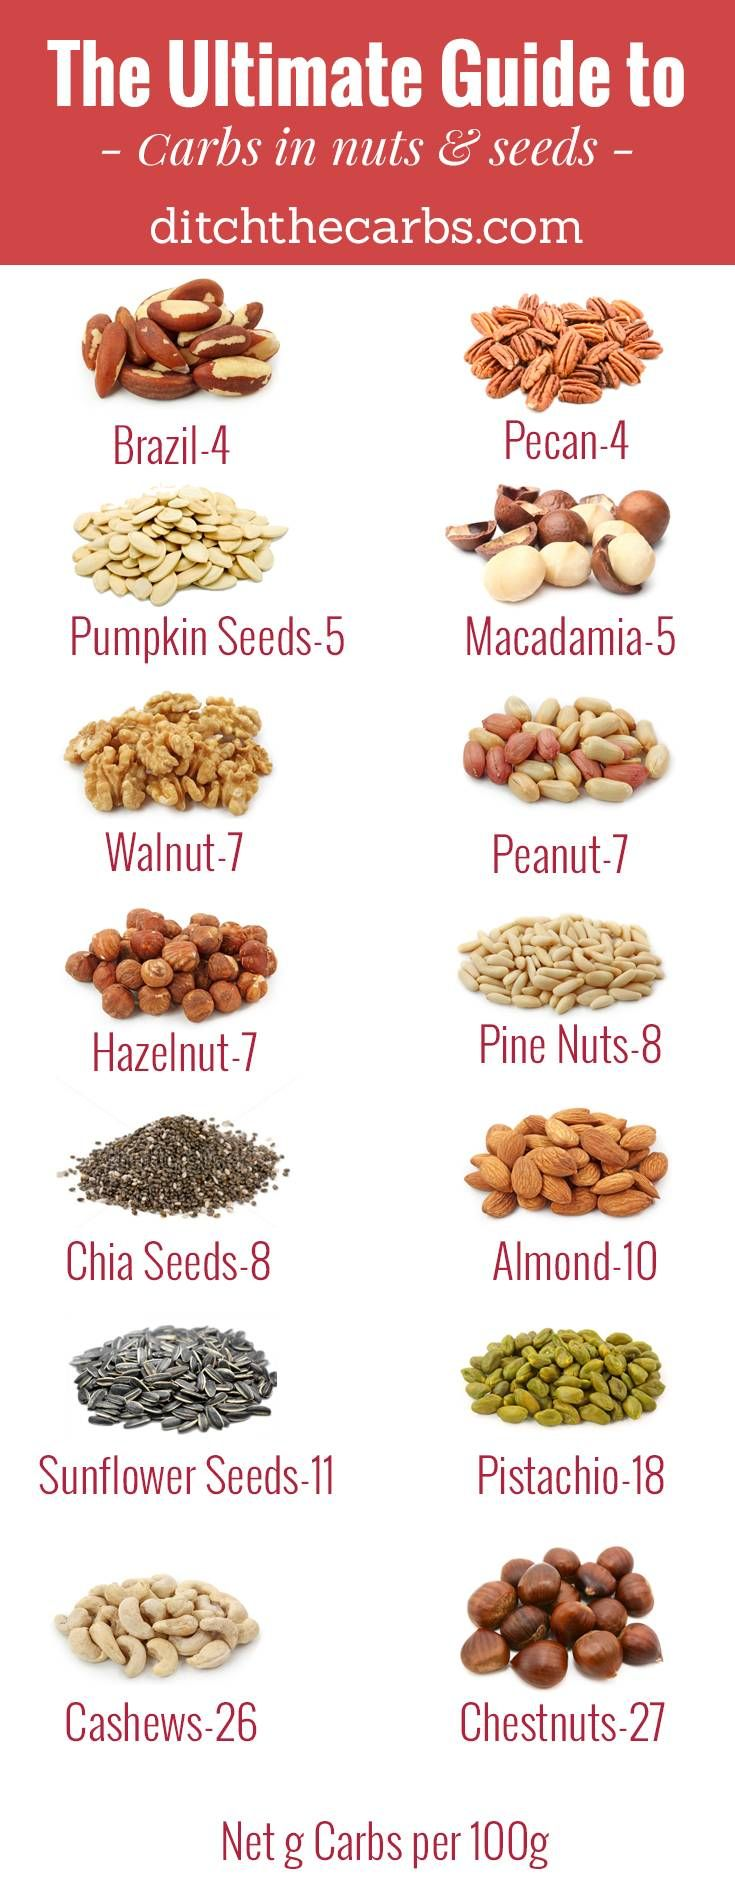 Read this Ultimate guide to carbs in nuts and seeds. You will see which to enjoy and which to avoid in an easy photo grid. | ditchthecarbs.com via @ditchthecarbs